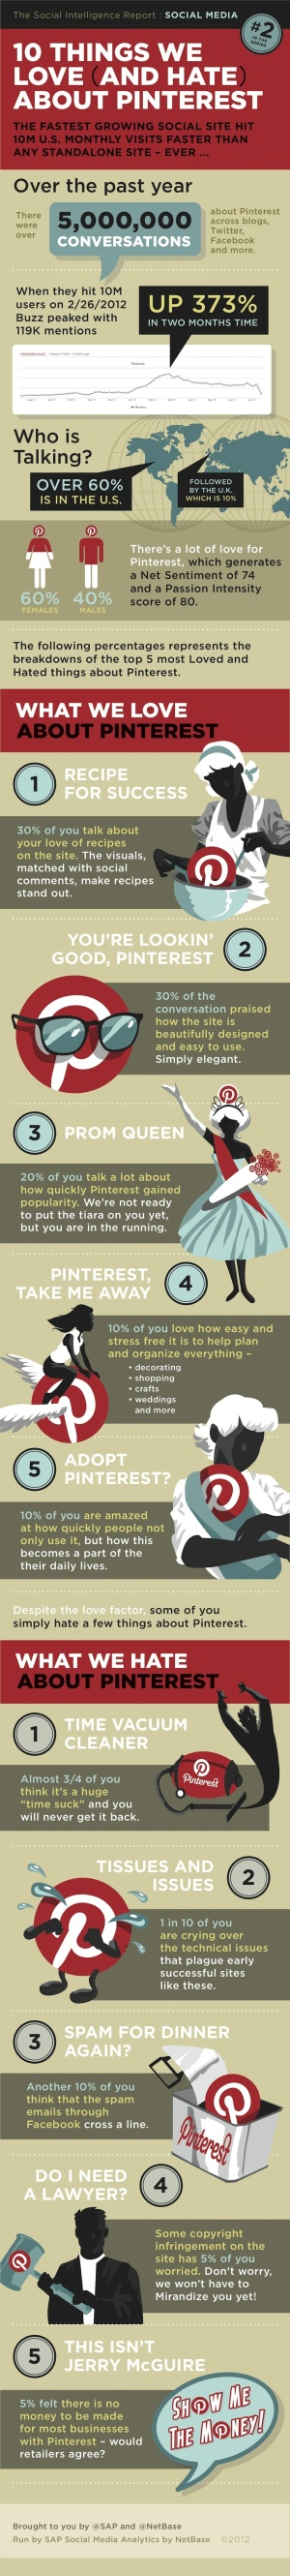 10 things we love and hate about pinterest